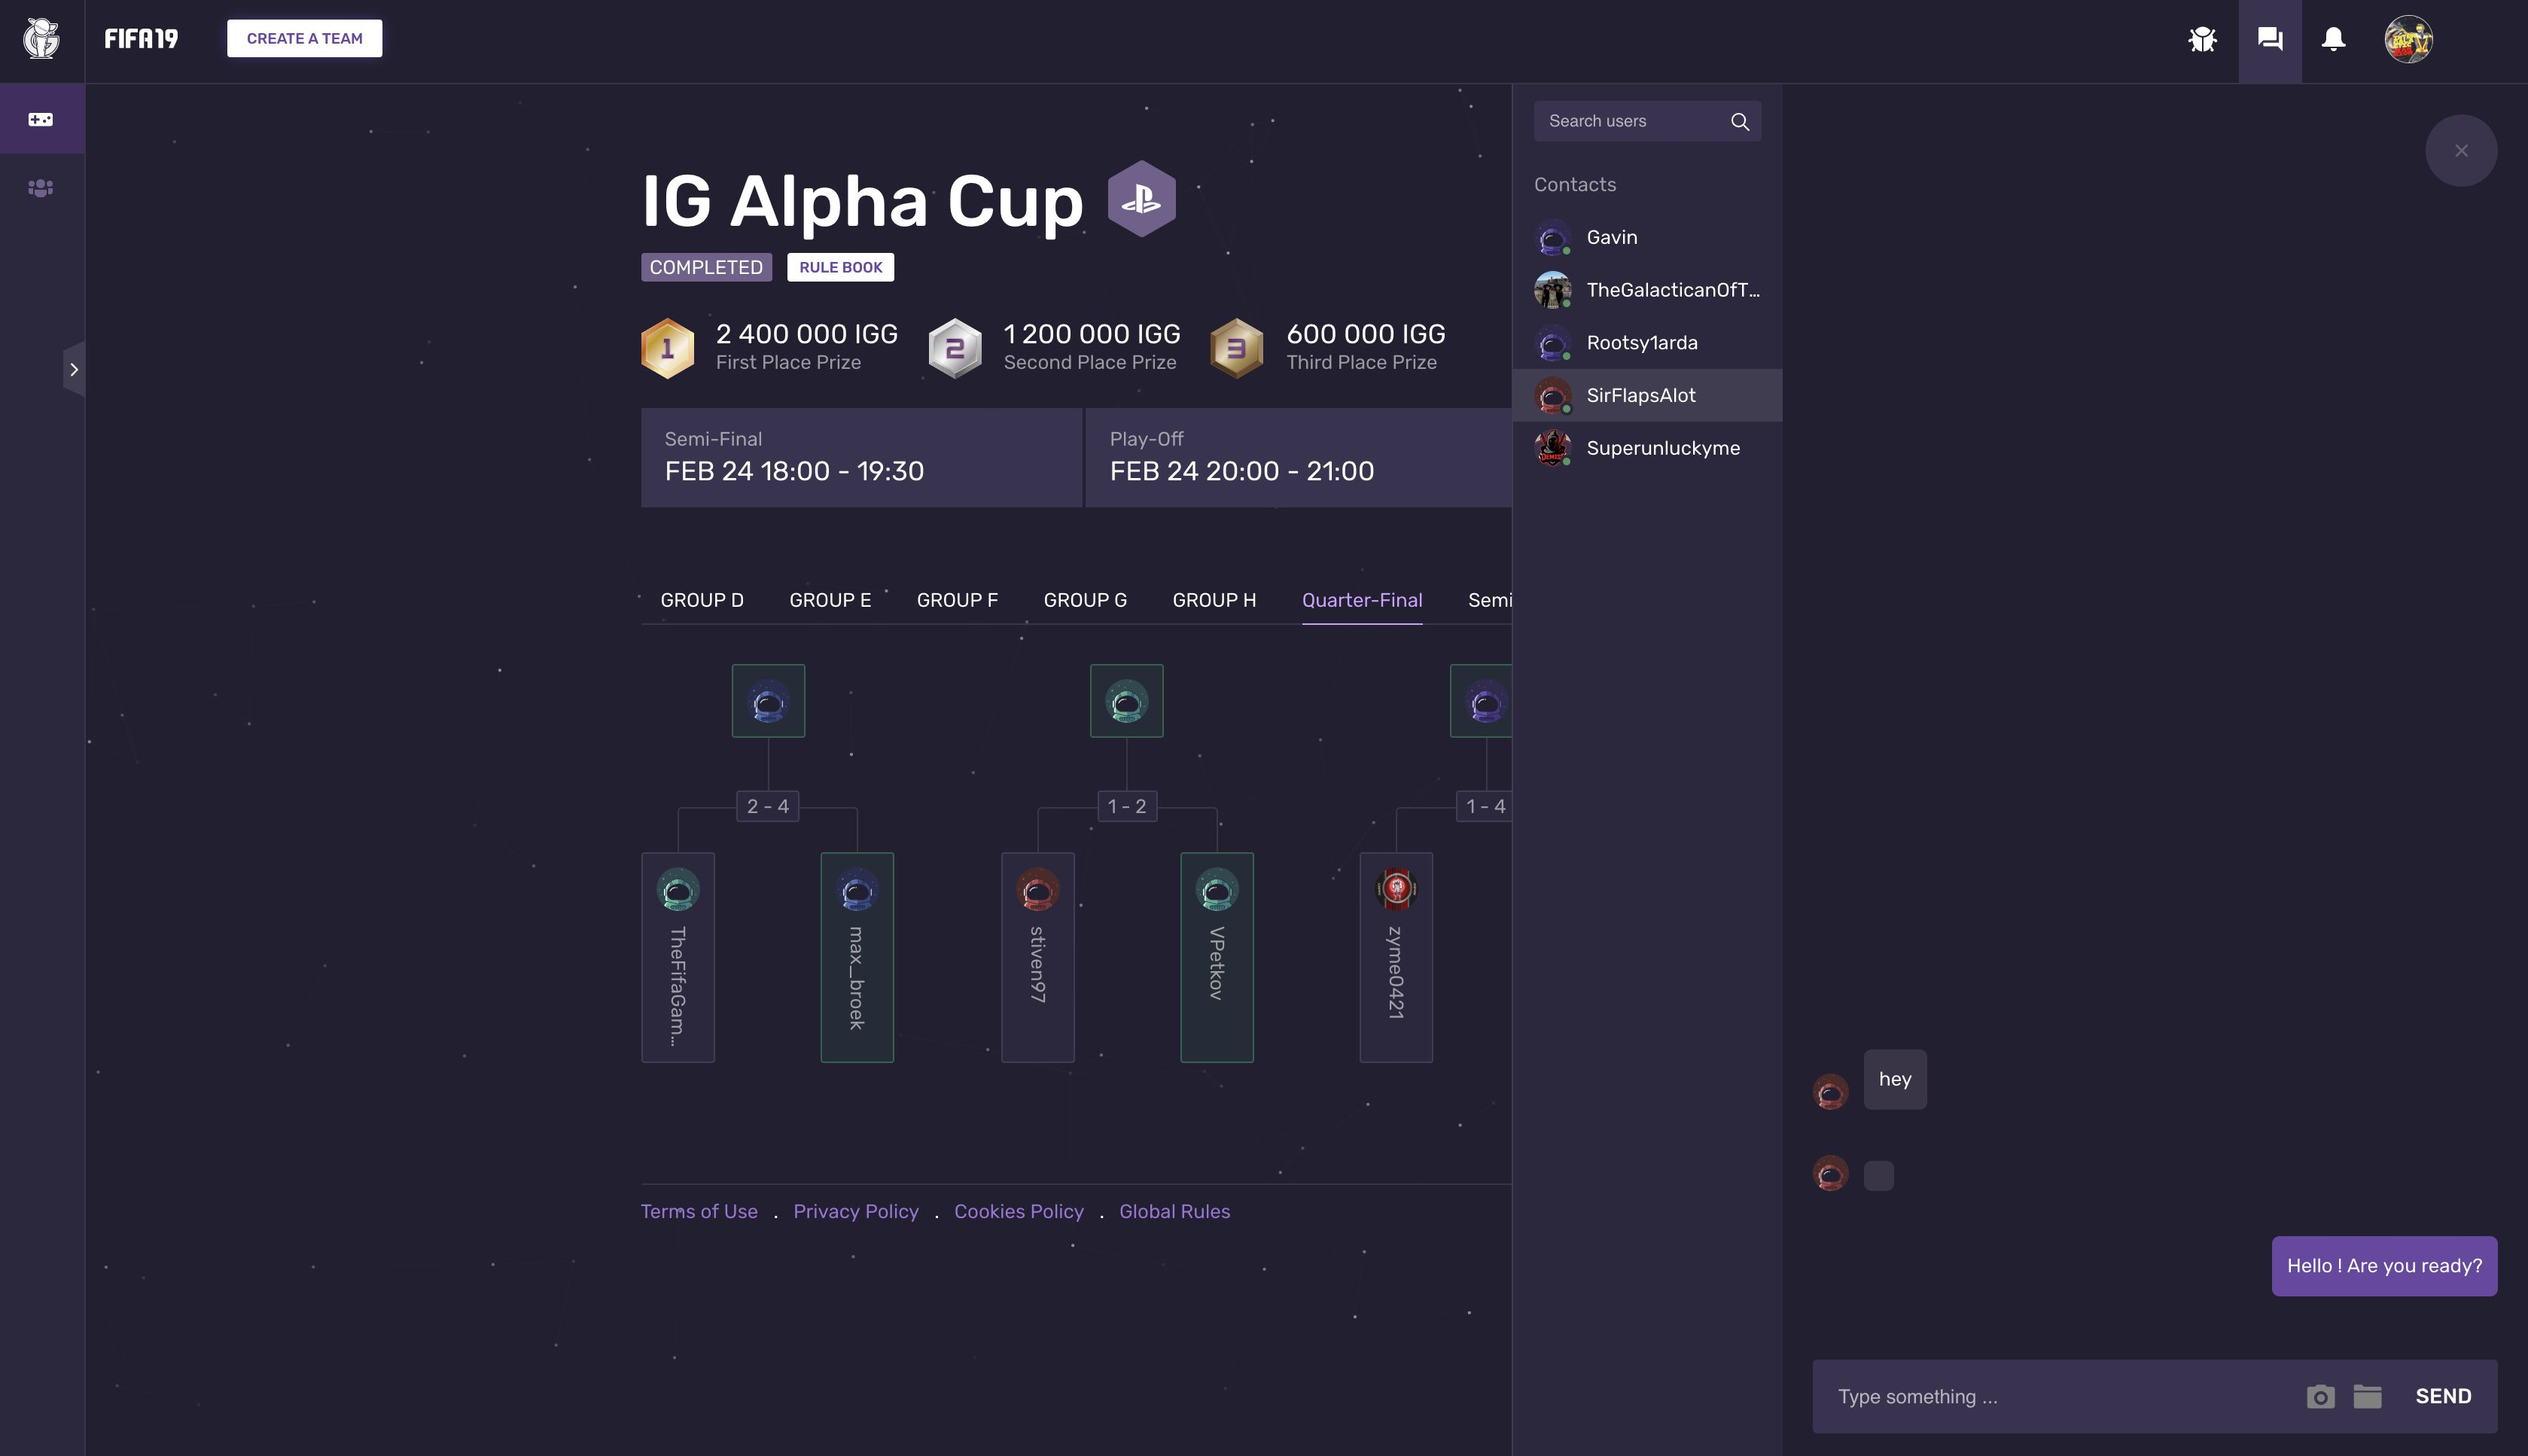 IG Alpha Cup tournament tree and user chat window.